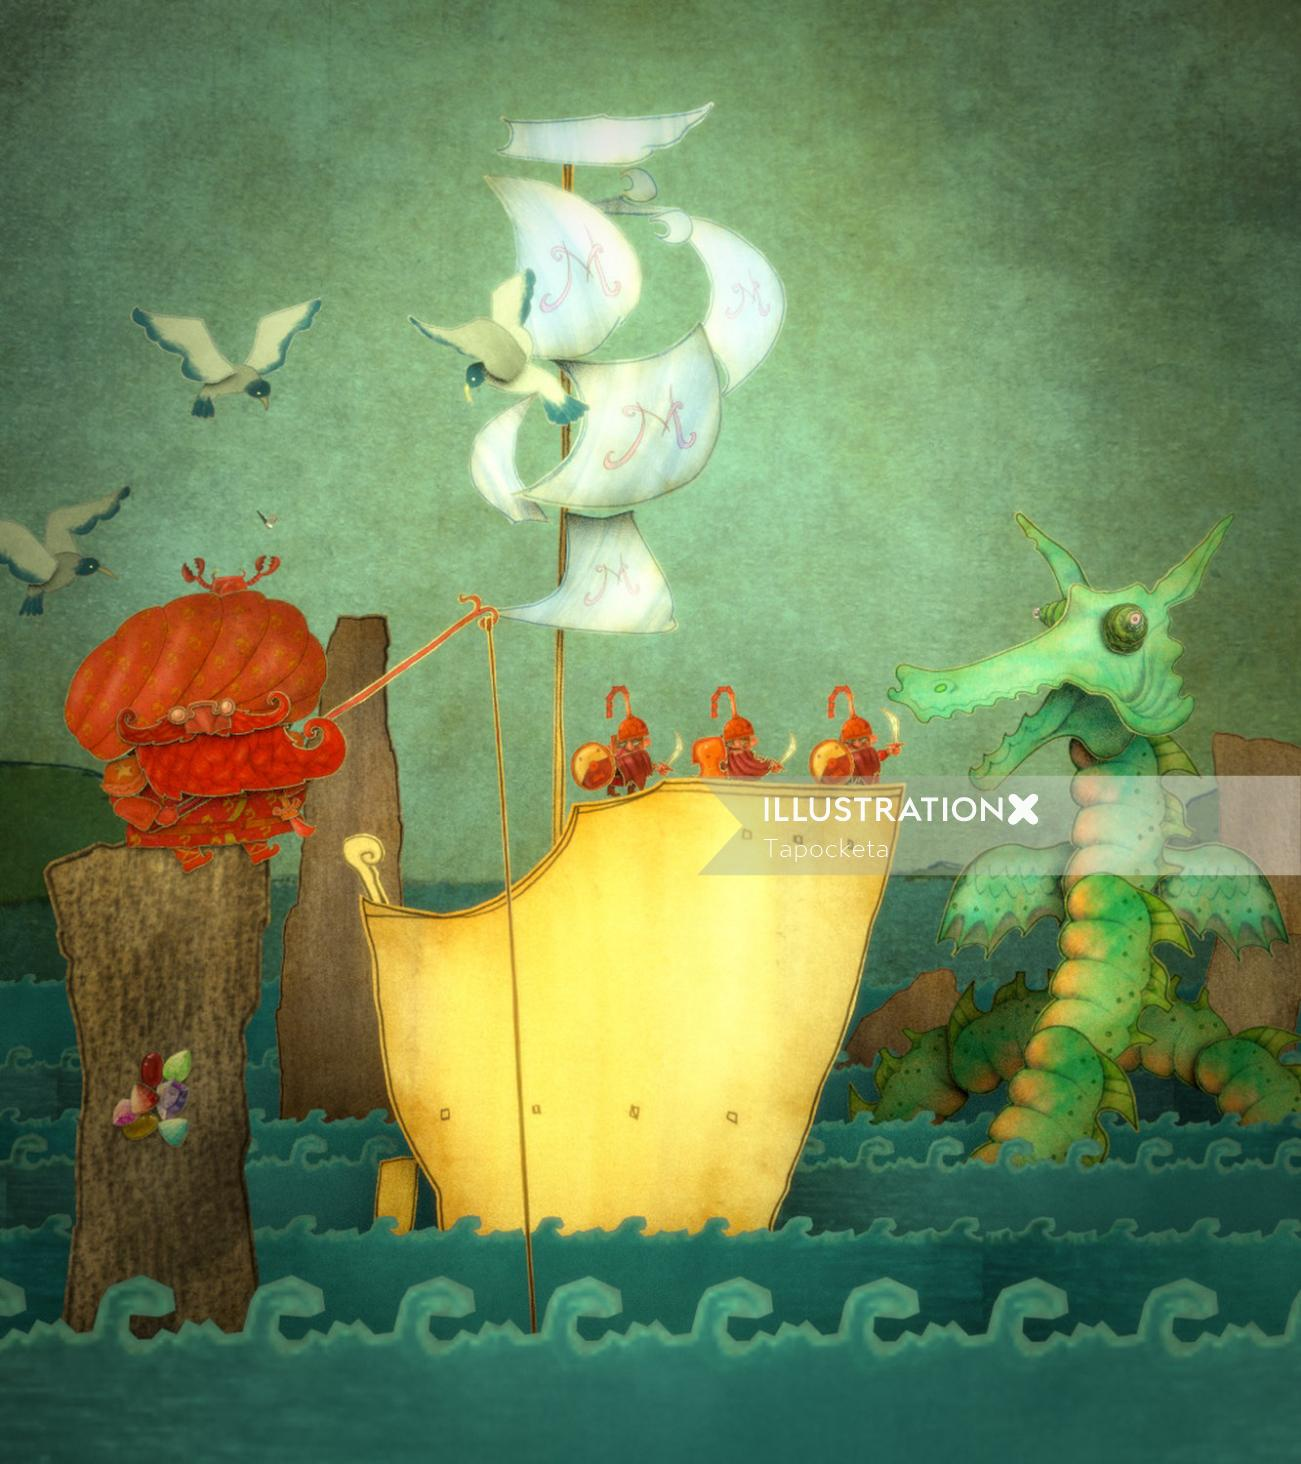 Illustration of Mustafo and the Sea Monster